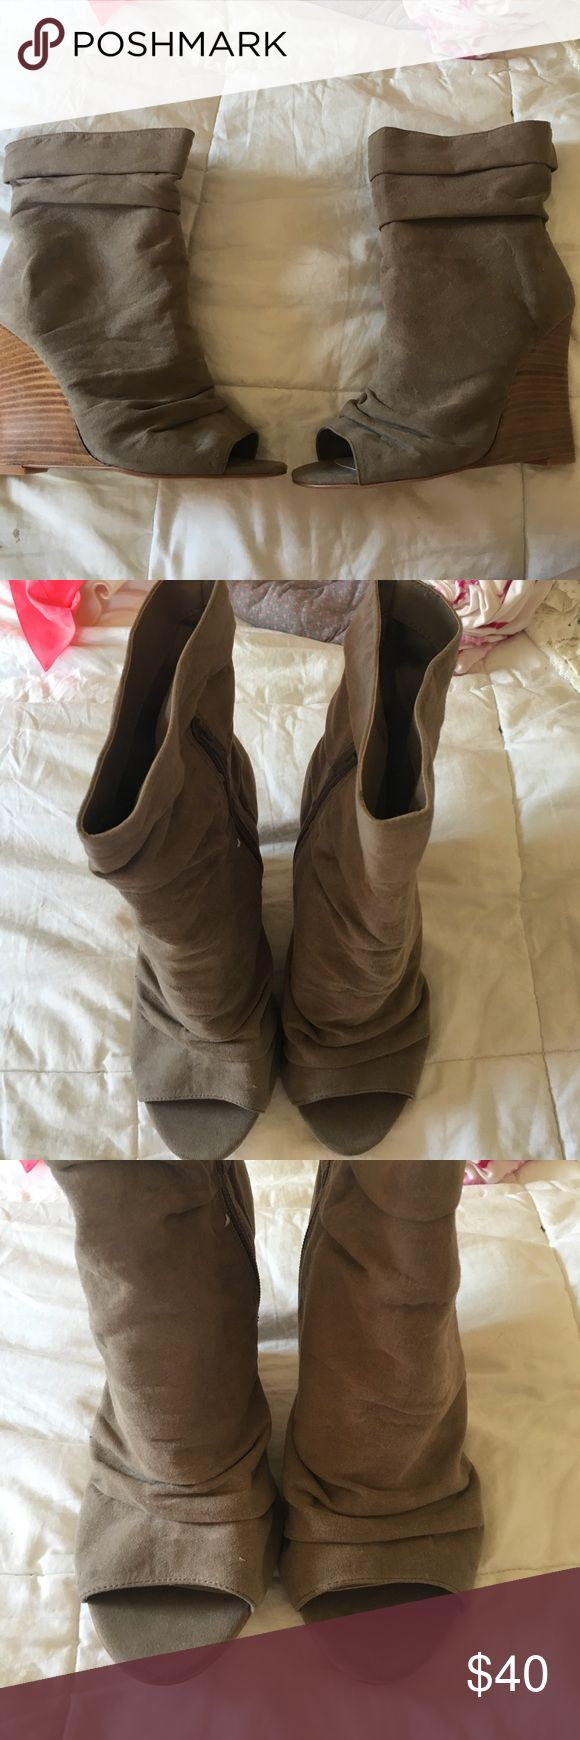 Torrid high heel suede booties 9W Torrid high hell suede booties. Wedge heel. Zips up on the inside. Open toe. Never worn. Great for springtime! Make an offer 😊 bundle & save 🤗 torrid Shoes Heeled Boots